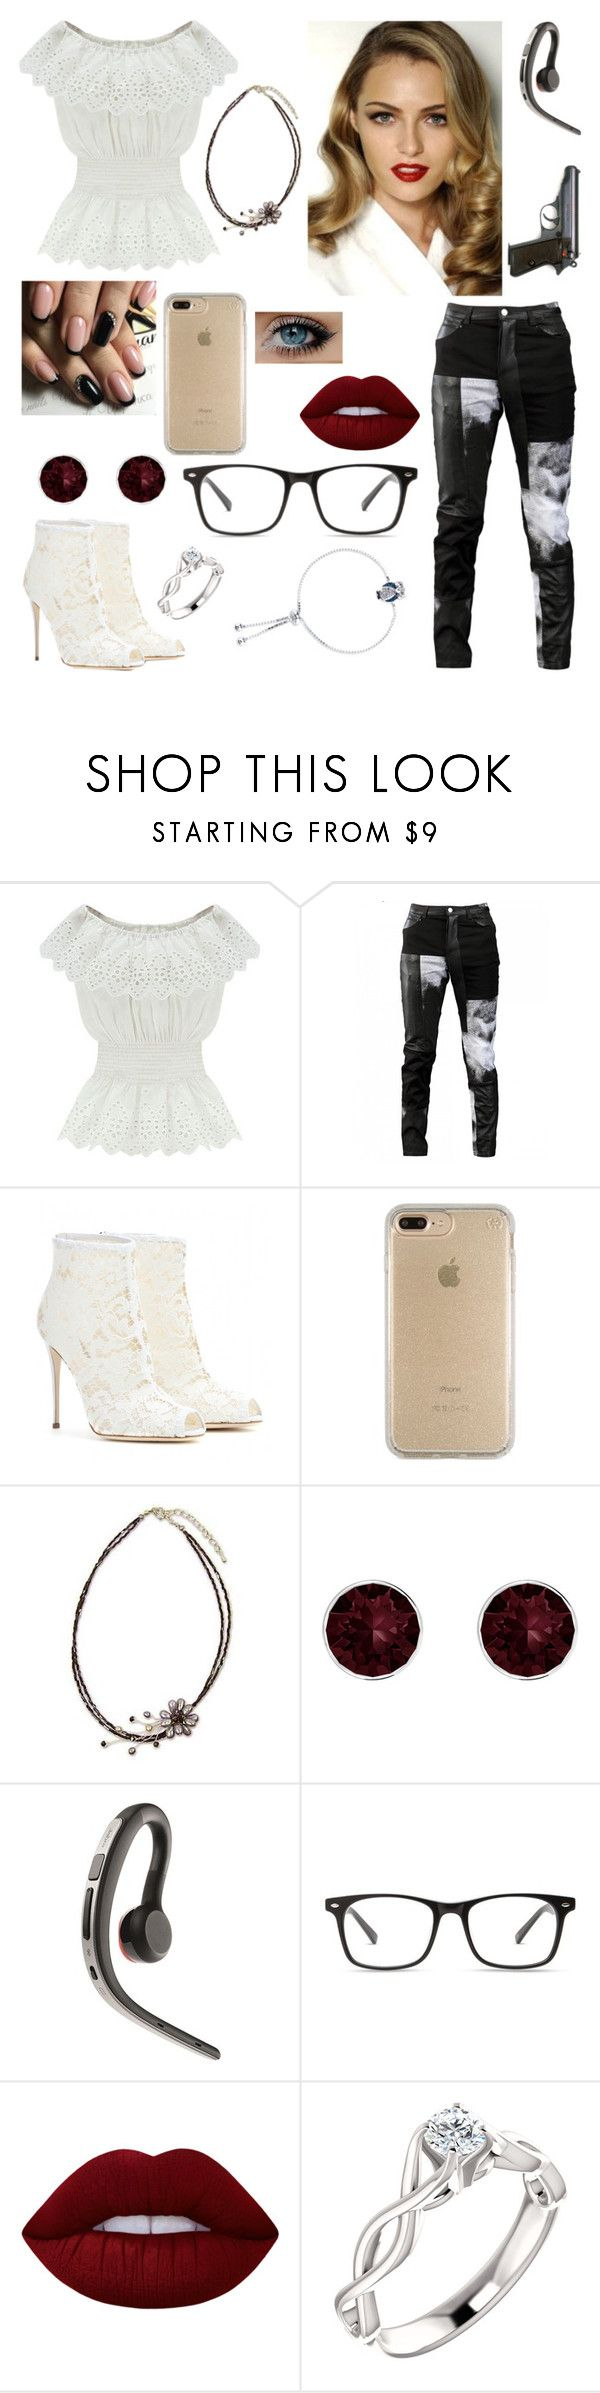 """""""Age of Adaline"""" by caketime ❤ liked on Polyvore featuring WithChic, Any Old Iron, Dolce&Gabbana, Speck, NOVICA, Pink Box, Jabra, Lime Crime and Unwritten"""